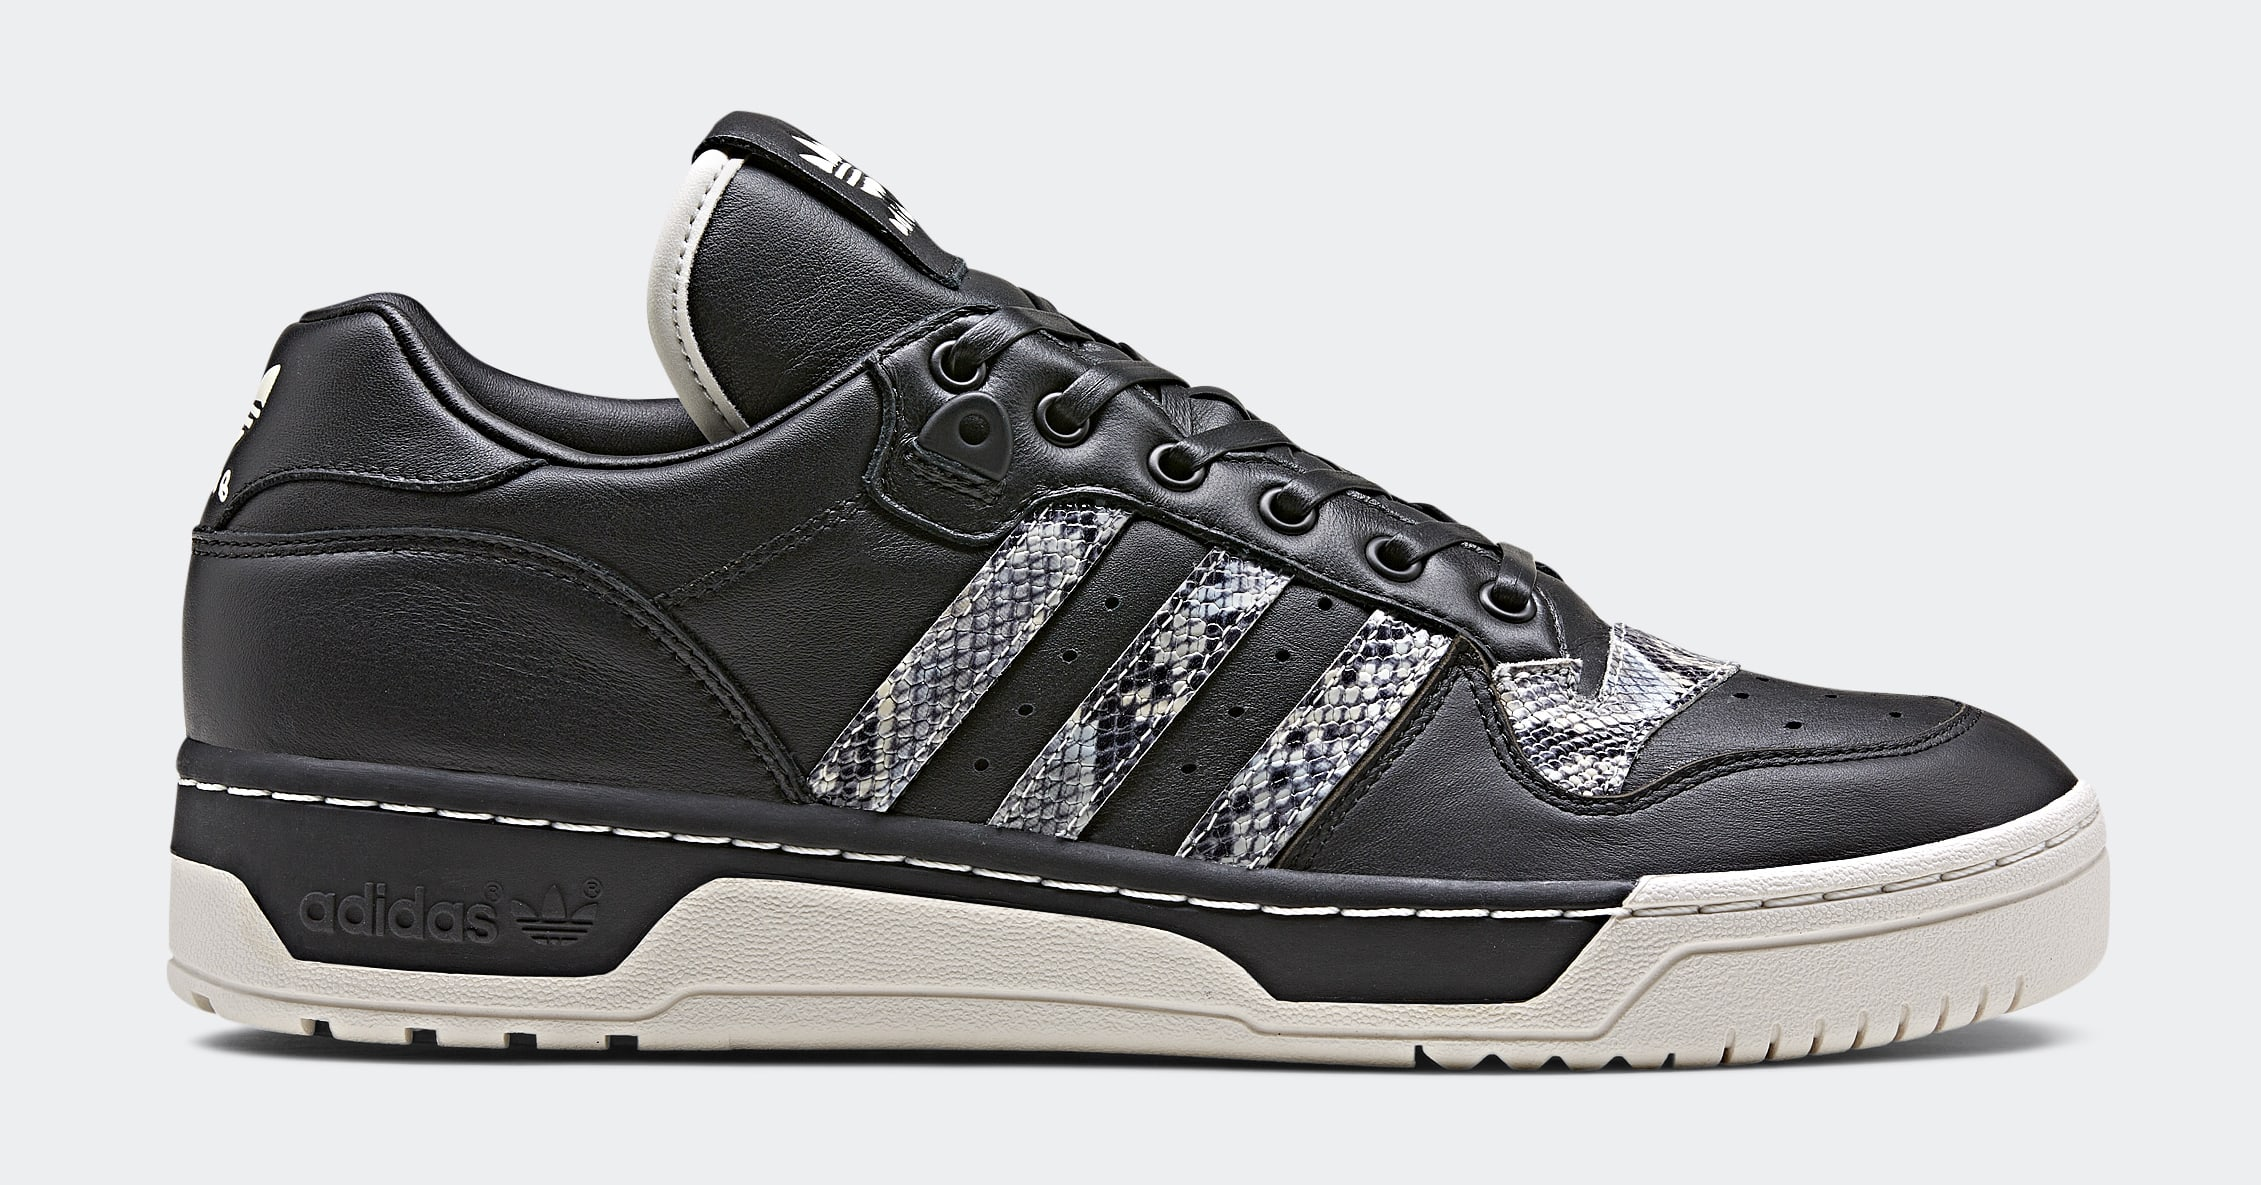 United Arrows and Sons x Adidas Rivalry Low B37112 (Lateral)